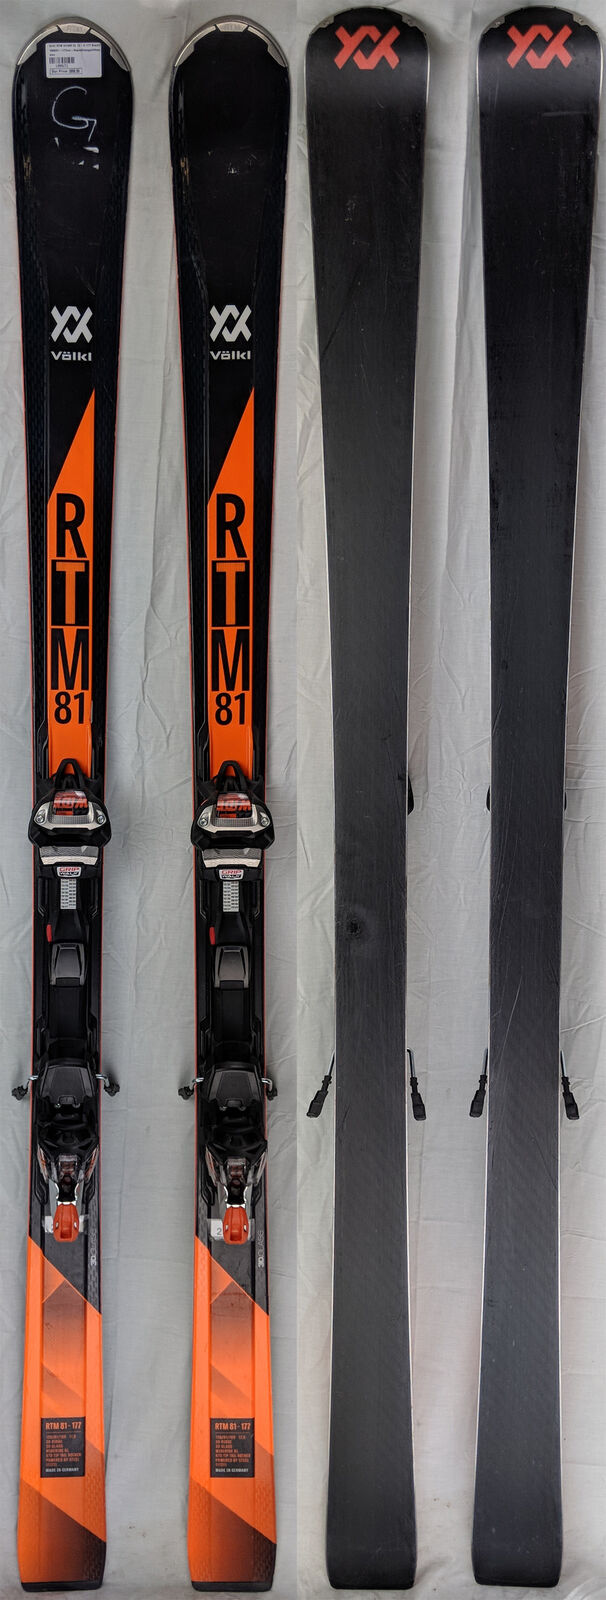 2017-18 Volkl RTM 81 USED Skis 156 cm with WRXL 12 Bindings - USED 81 - Gold 927b1b